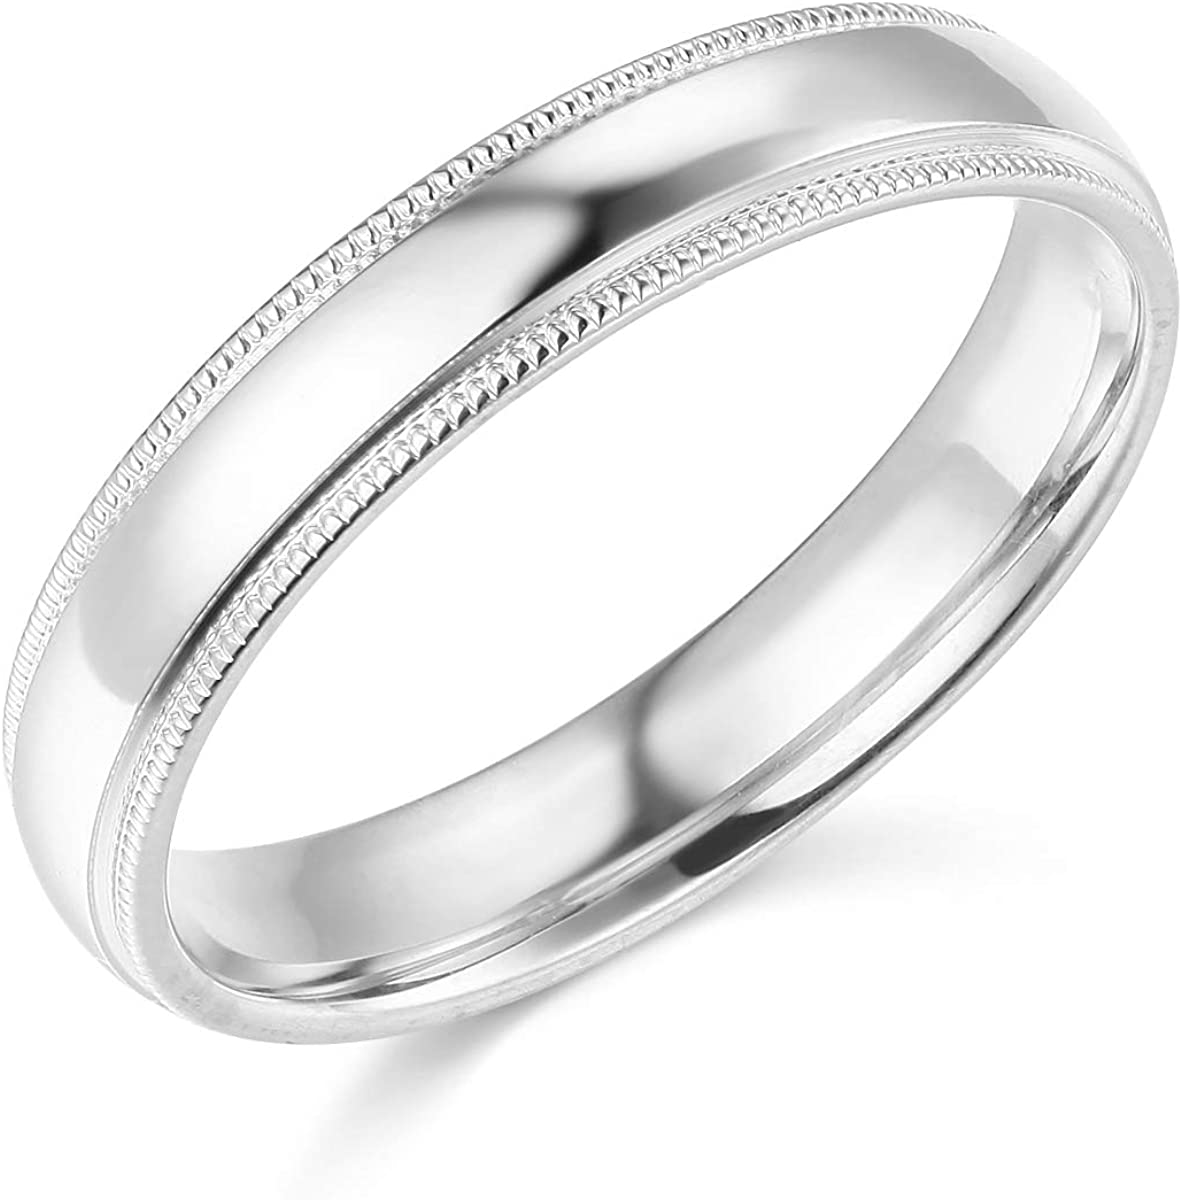 Wellingsale Ladies 14k Yellow -OR- White Gold Solid 4mm COMFORT FIT Milgrain Traditional Wedding Band Ring